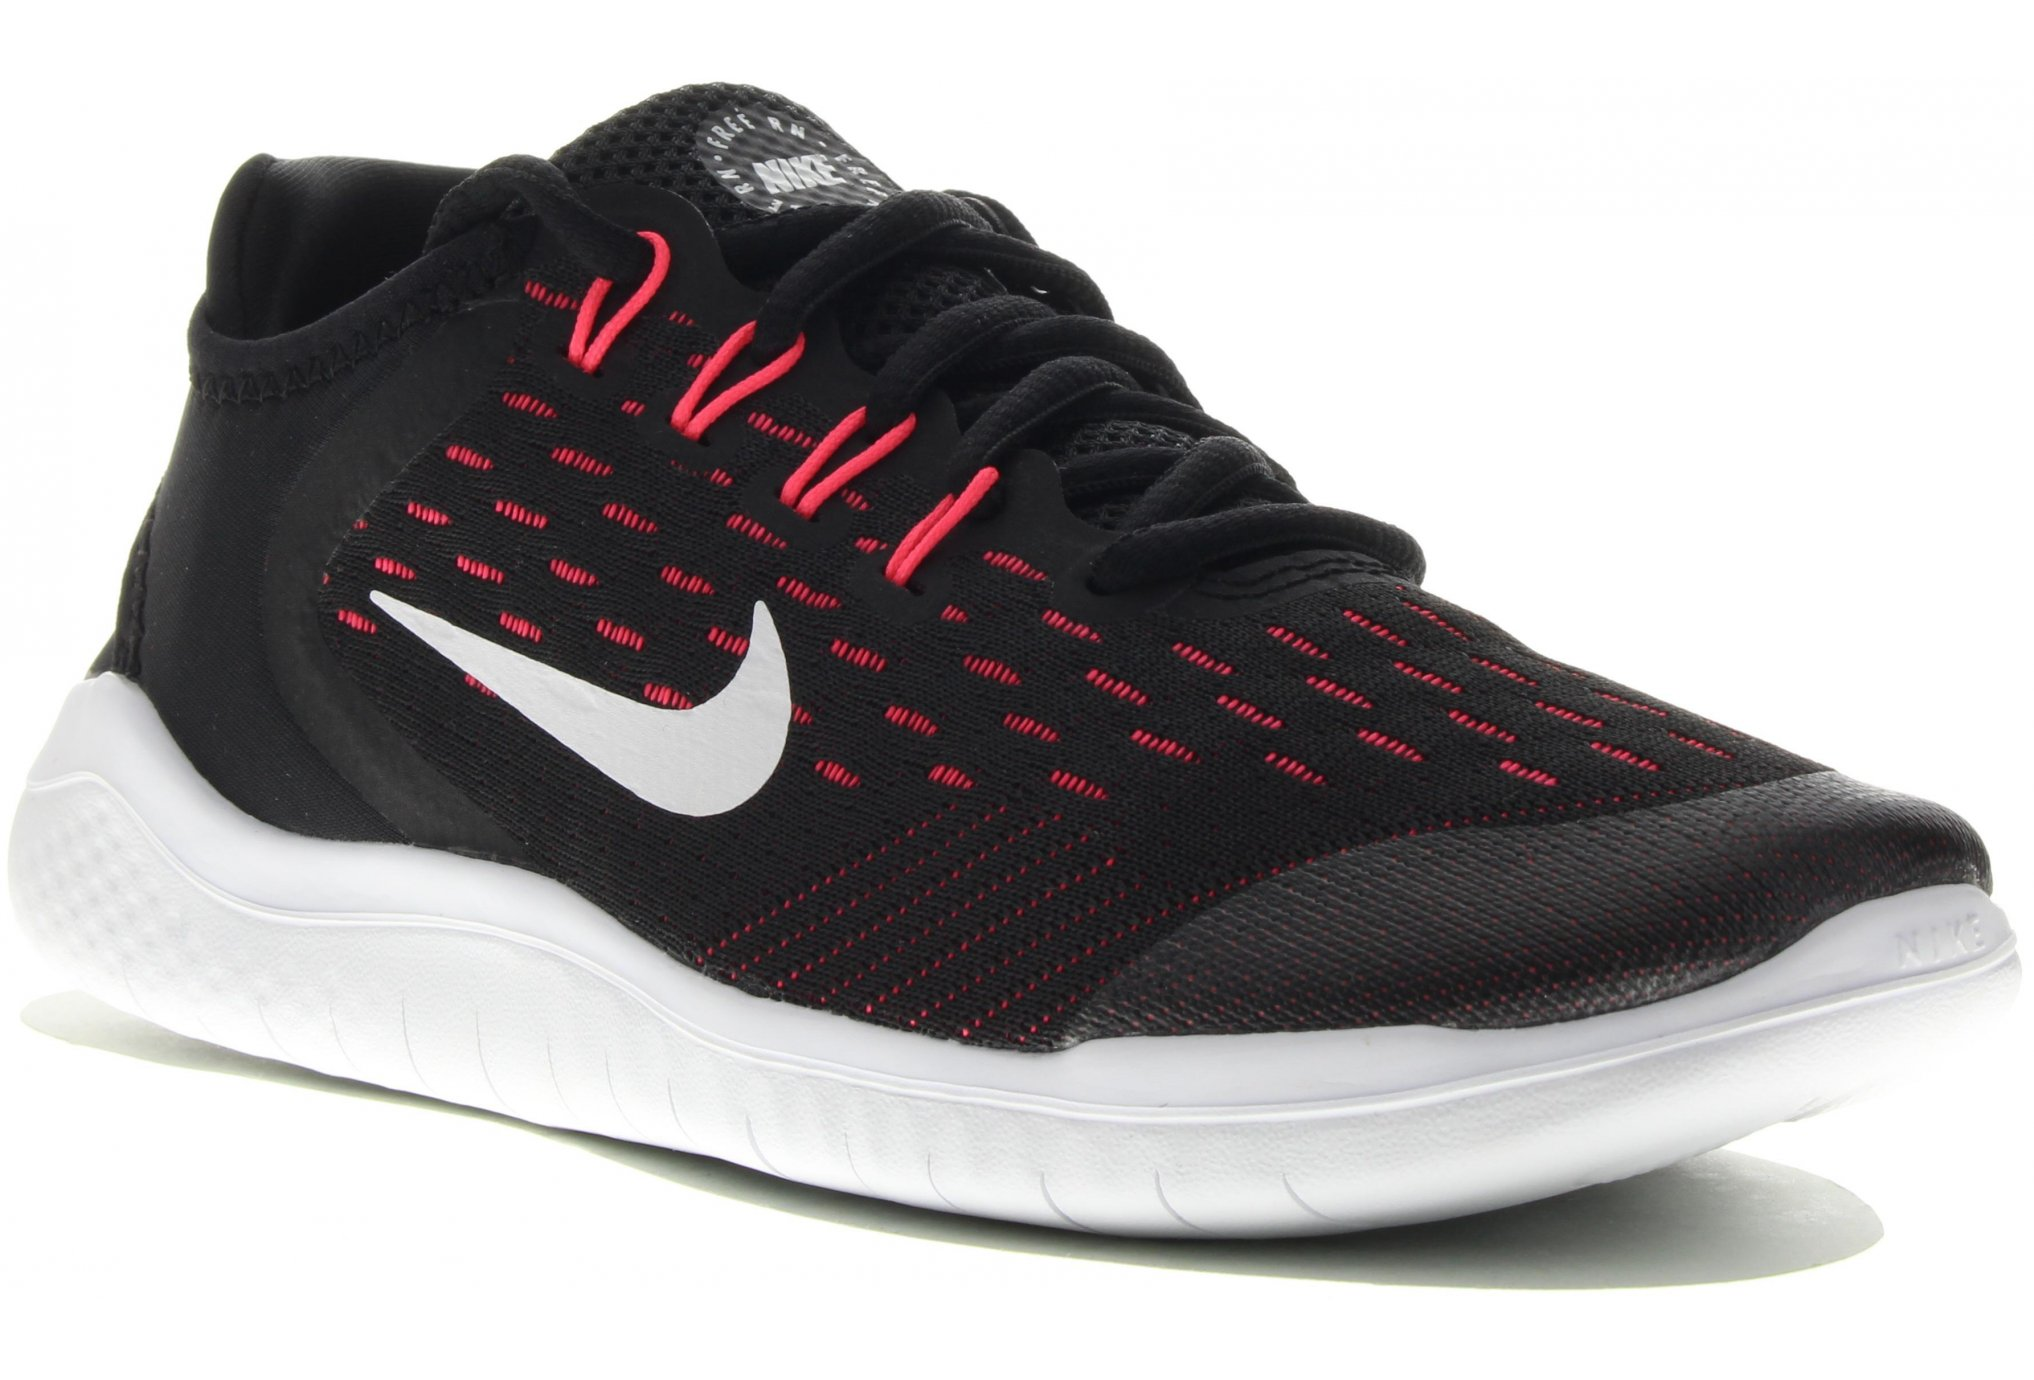 Nike Free RN Fille Chaussures running femme